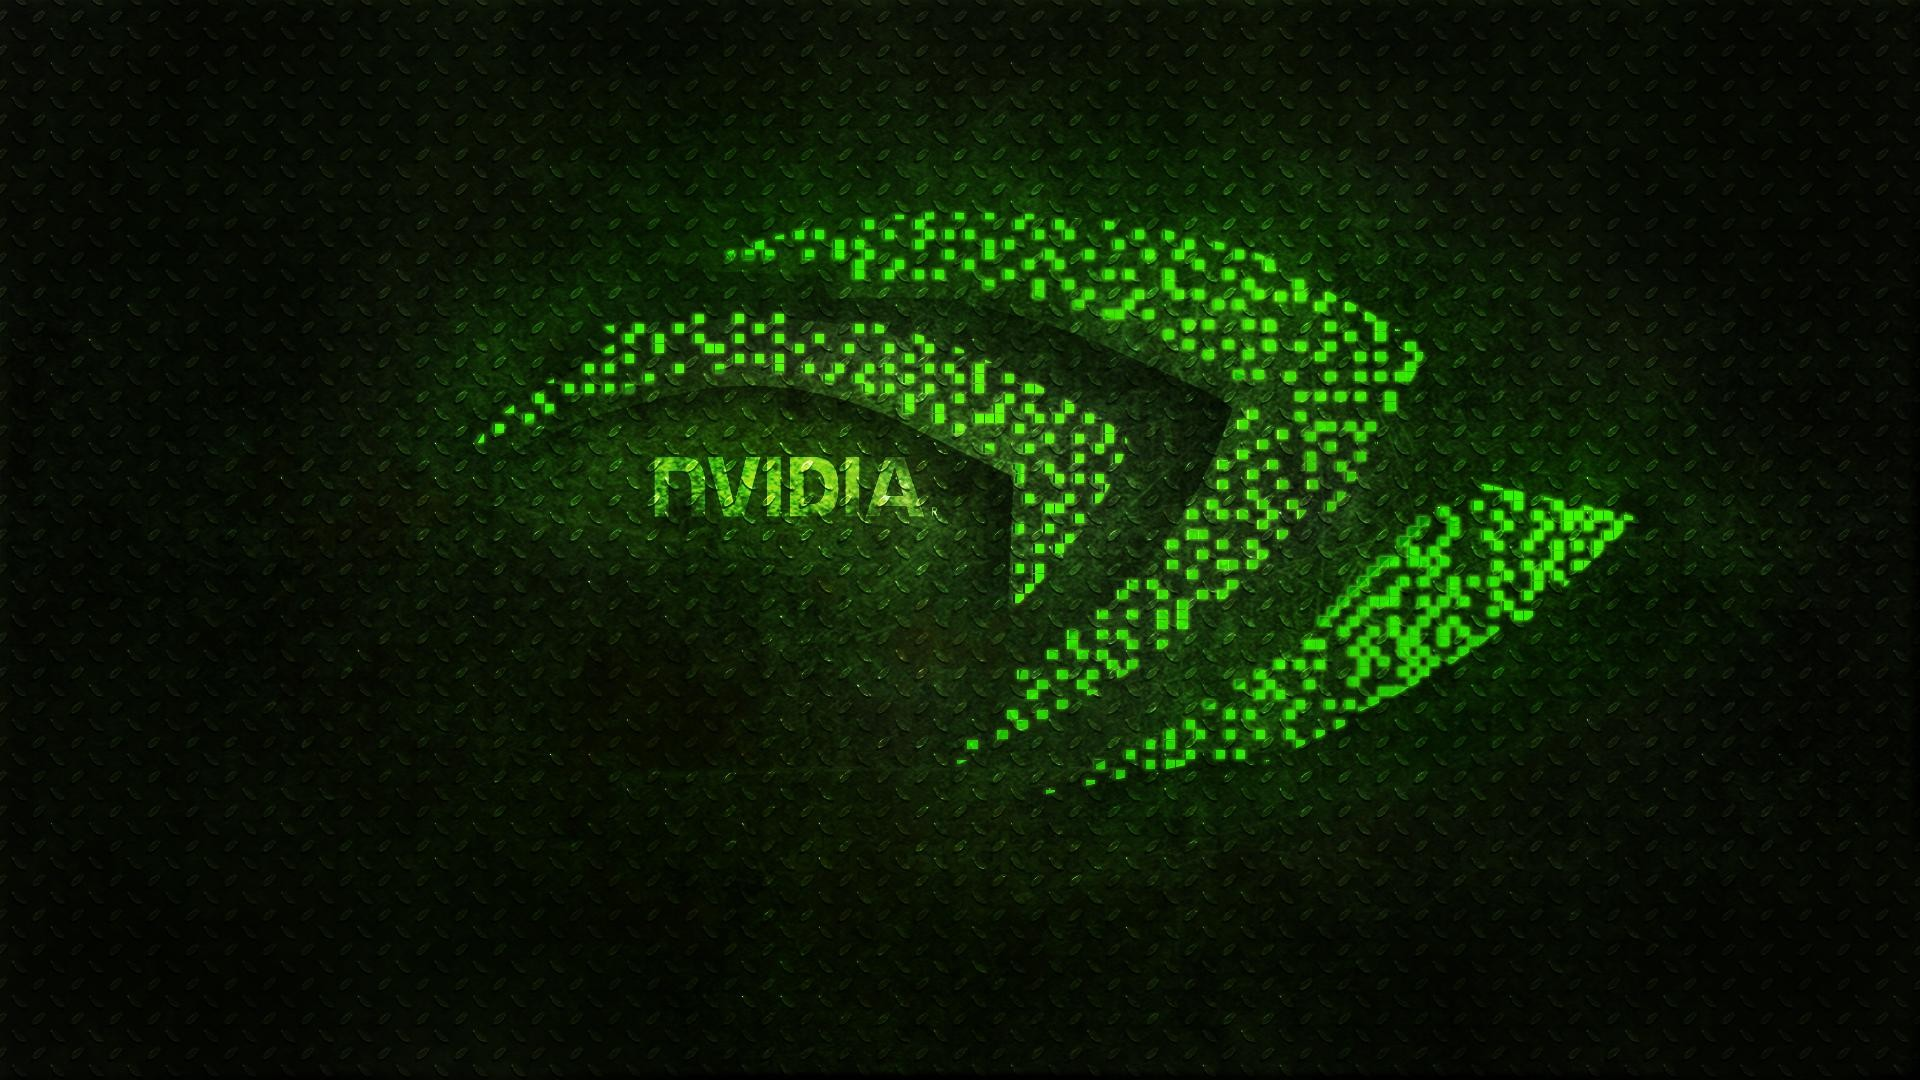 wallpaper.wiki-Pictures-Nvidia-HD-Free-Download-PIC-